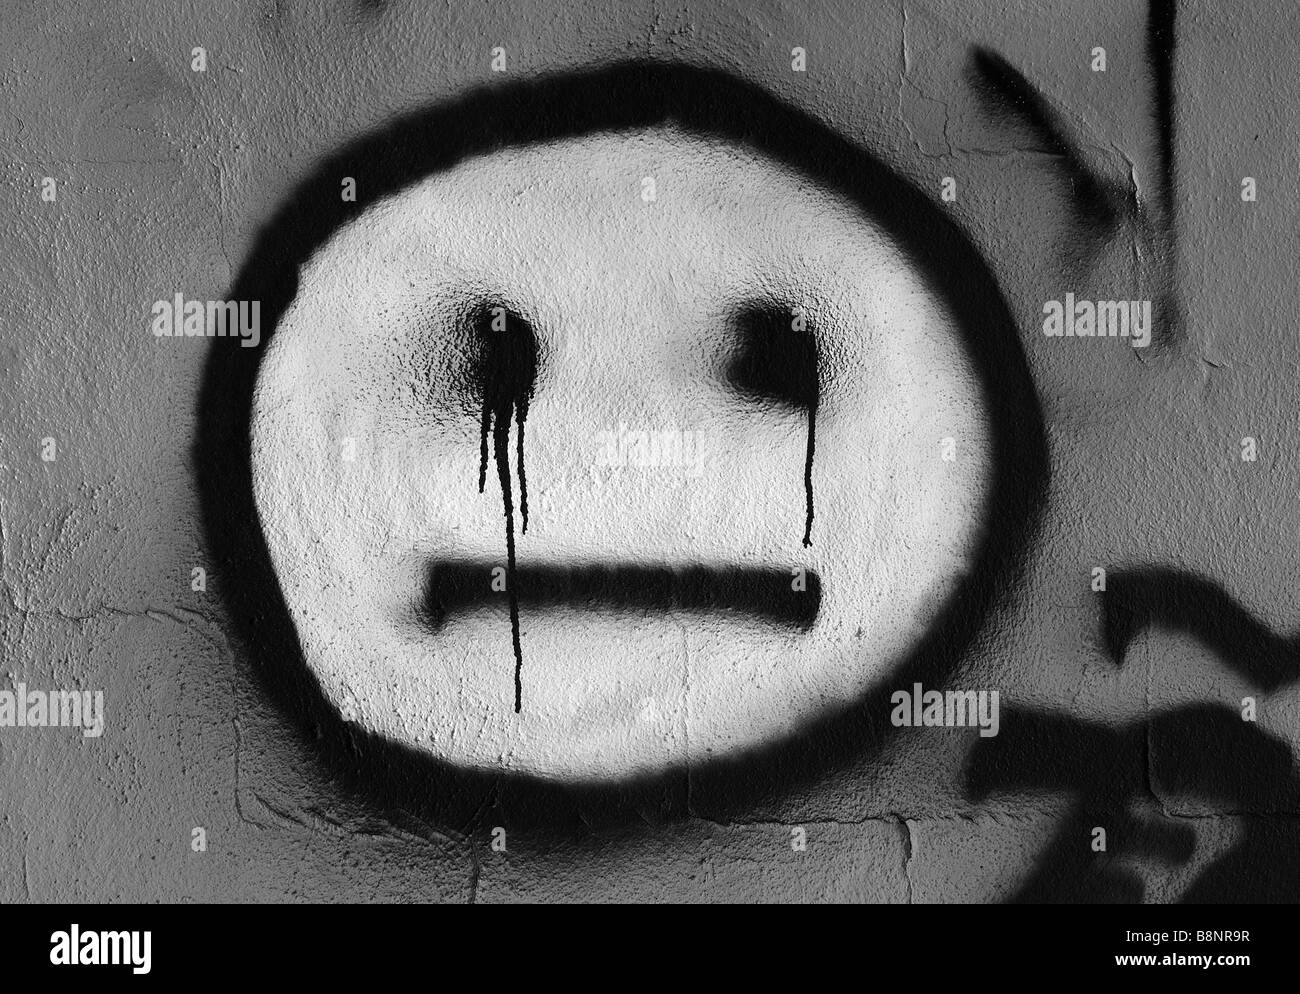 Graffiti smiley happy face on cement wall vandalism menacing eyes look like they are bleeding urban decay ghetto slum crime